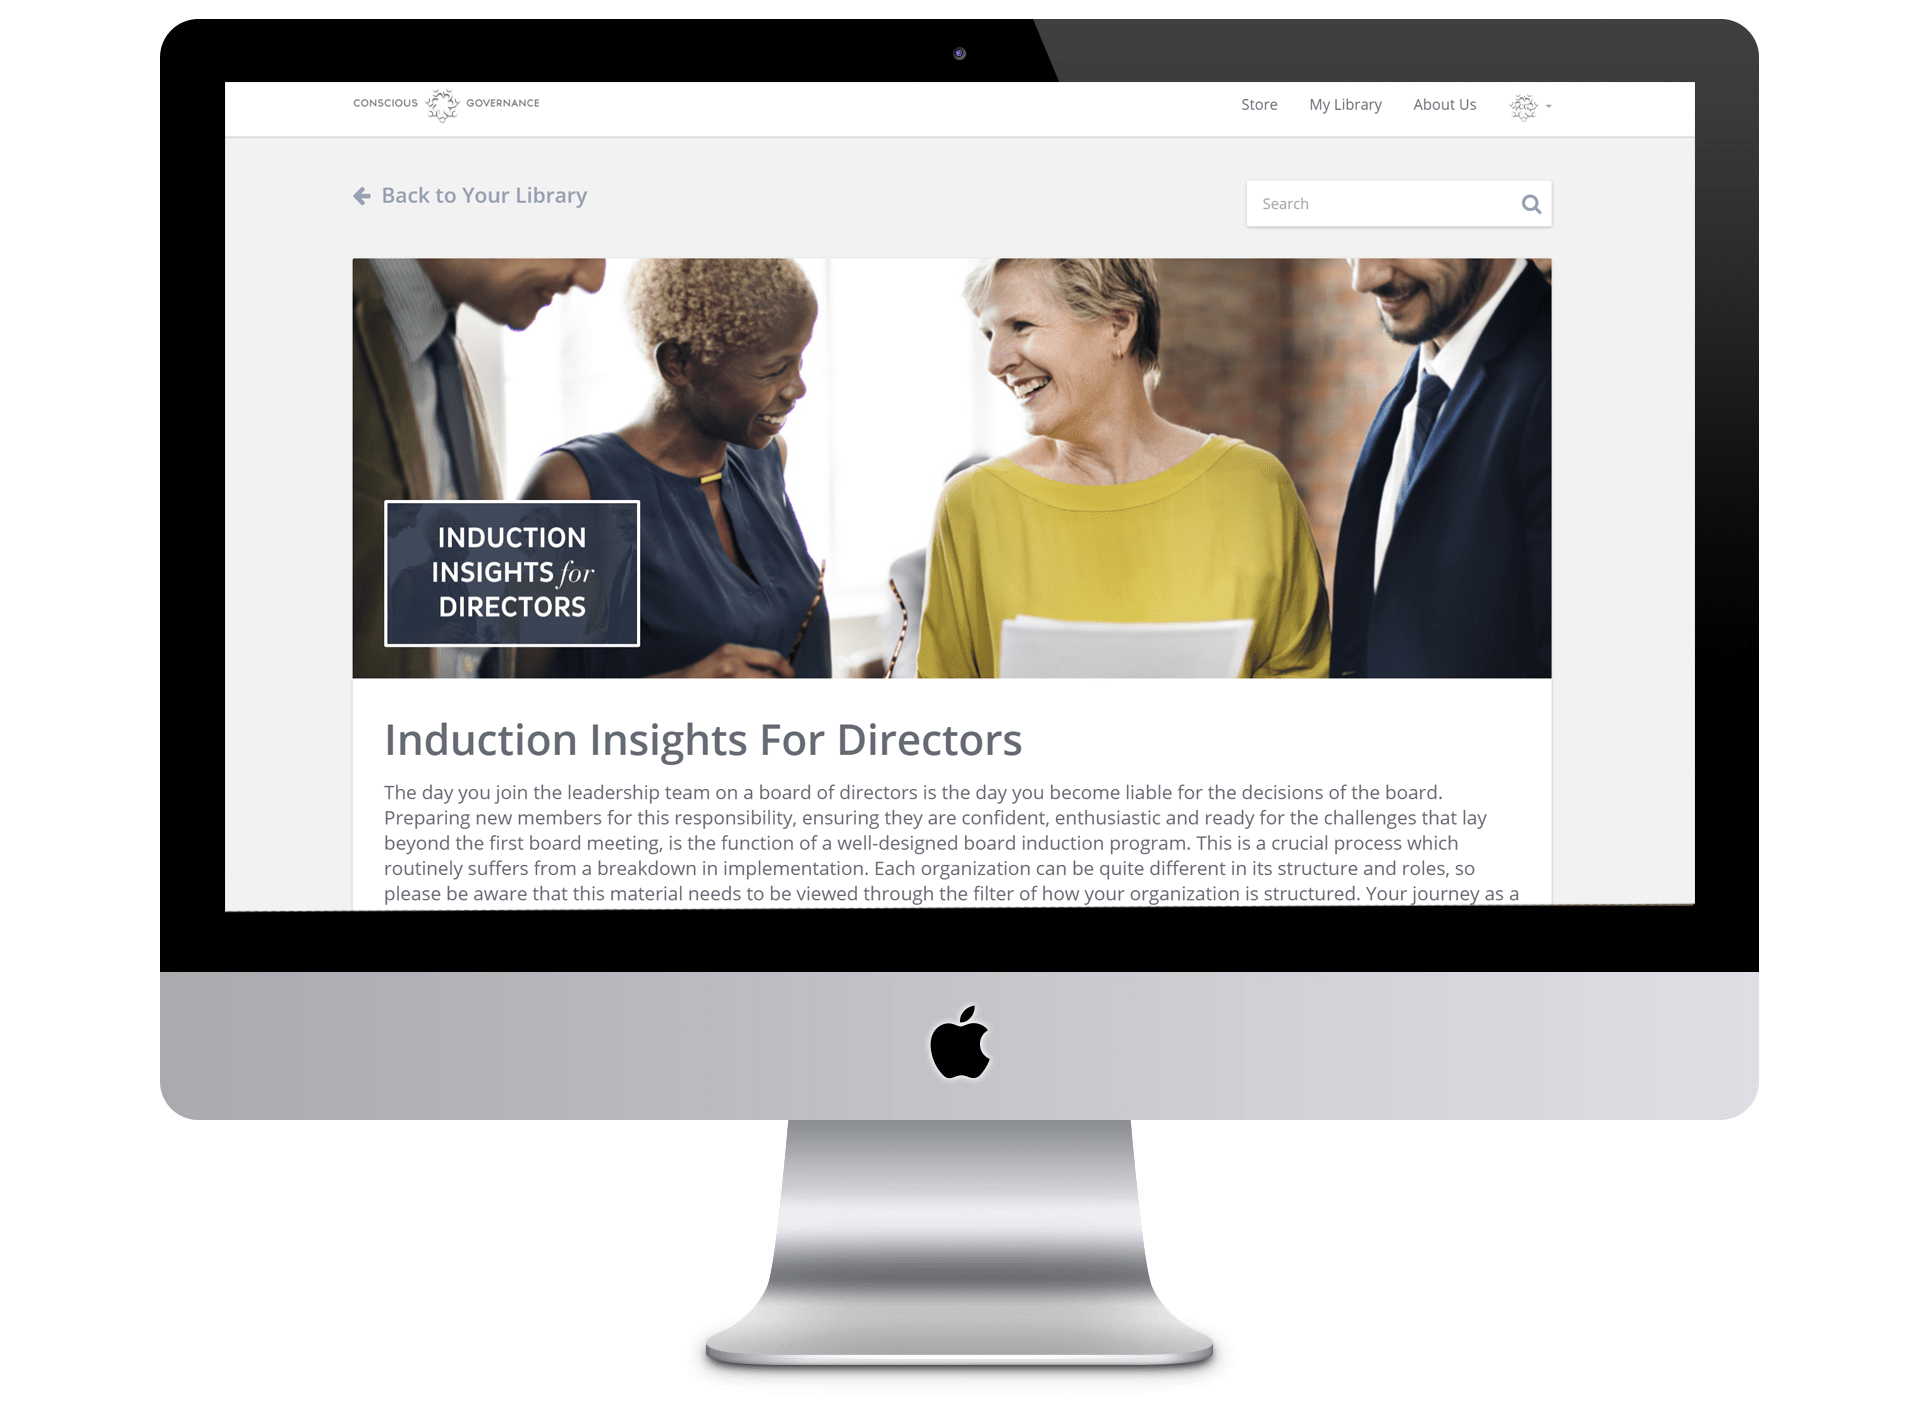 Induction insights for directors